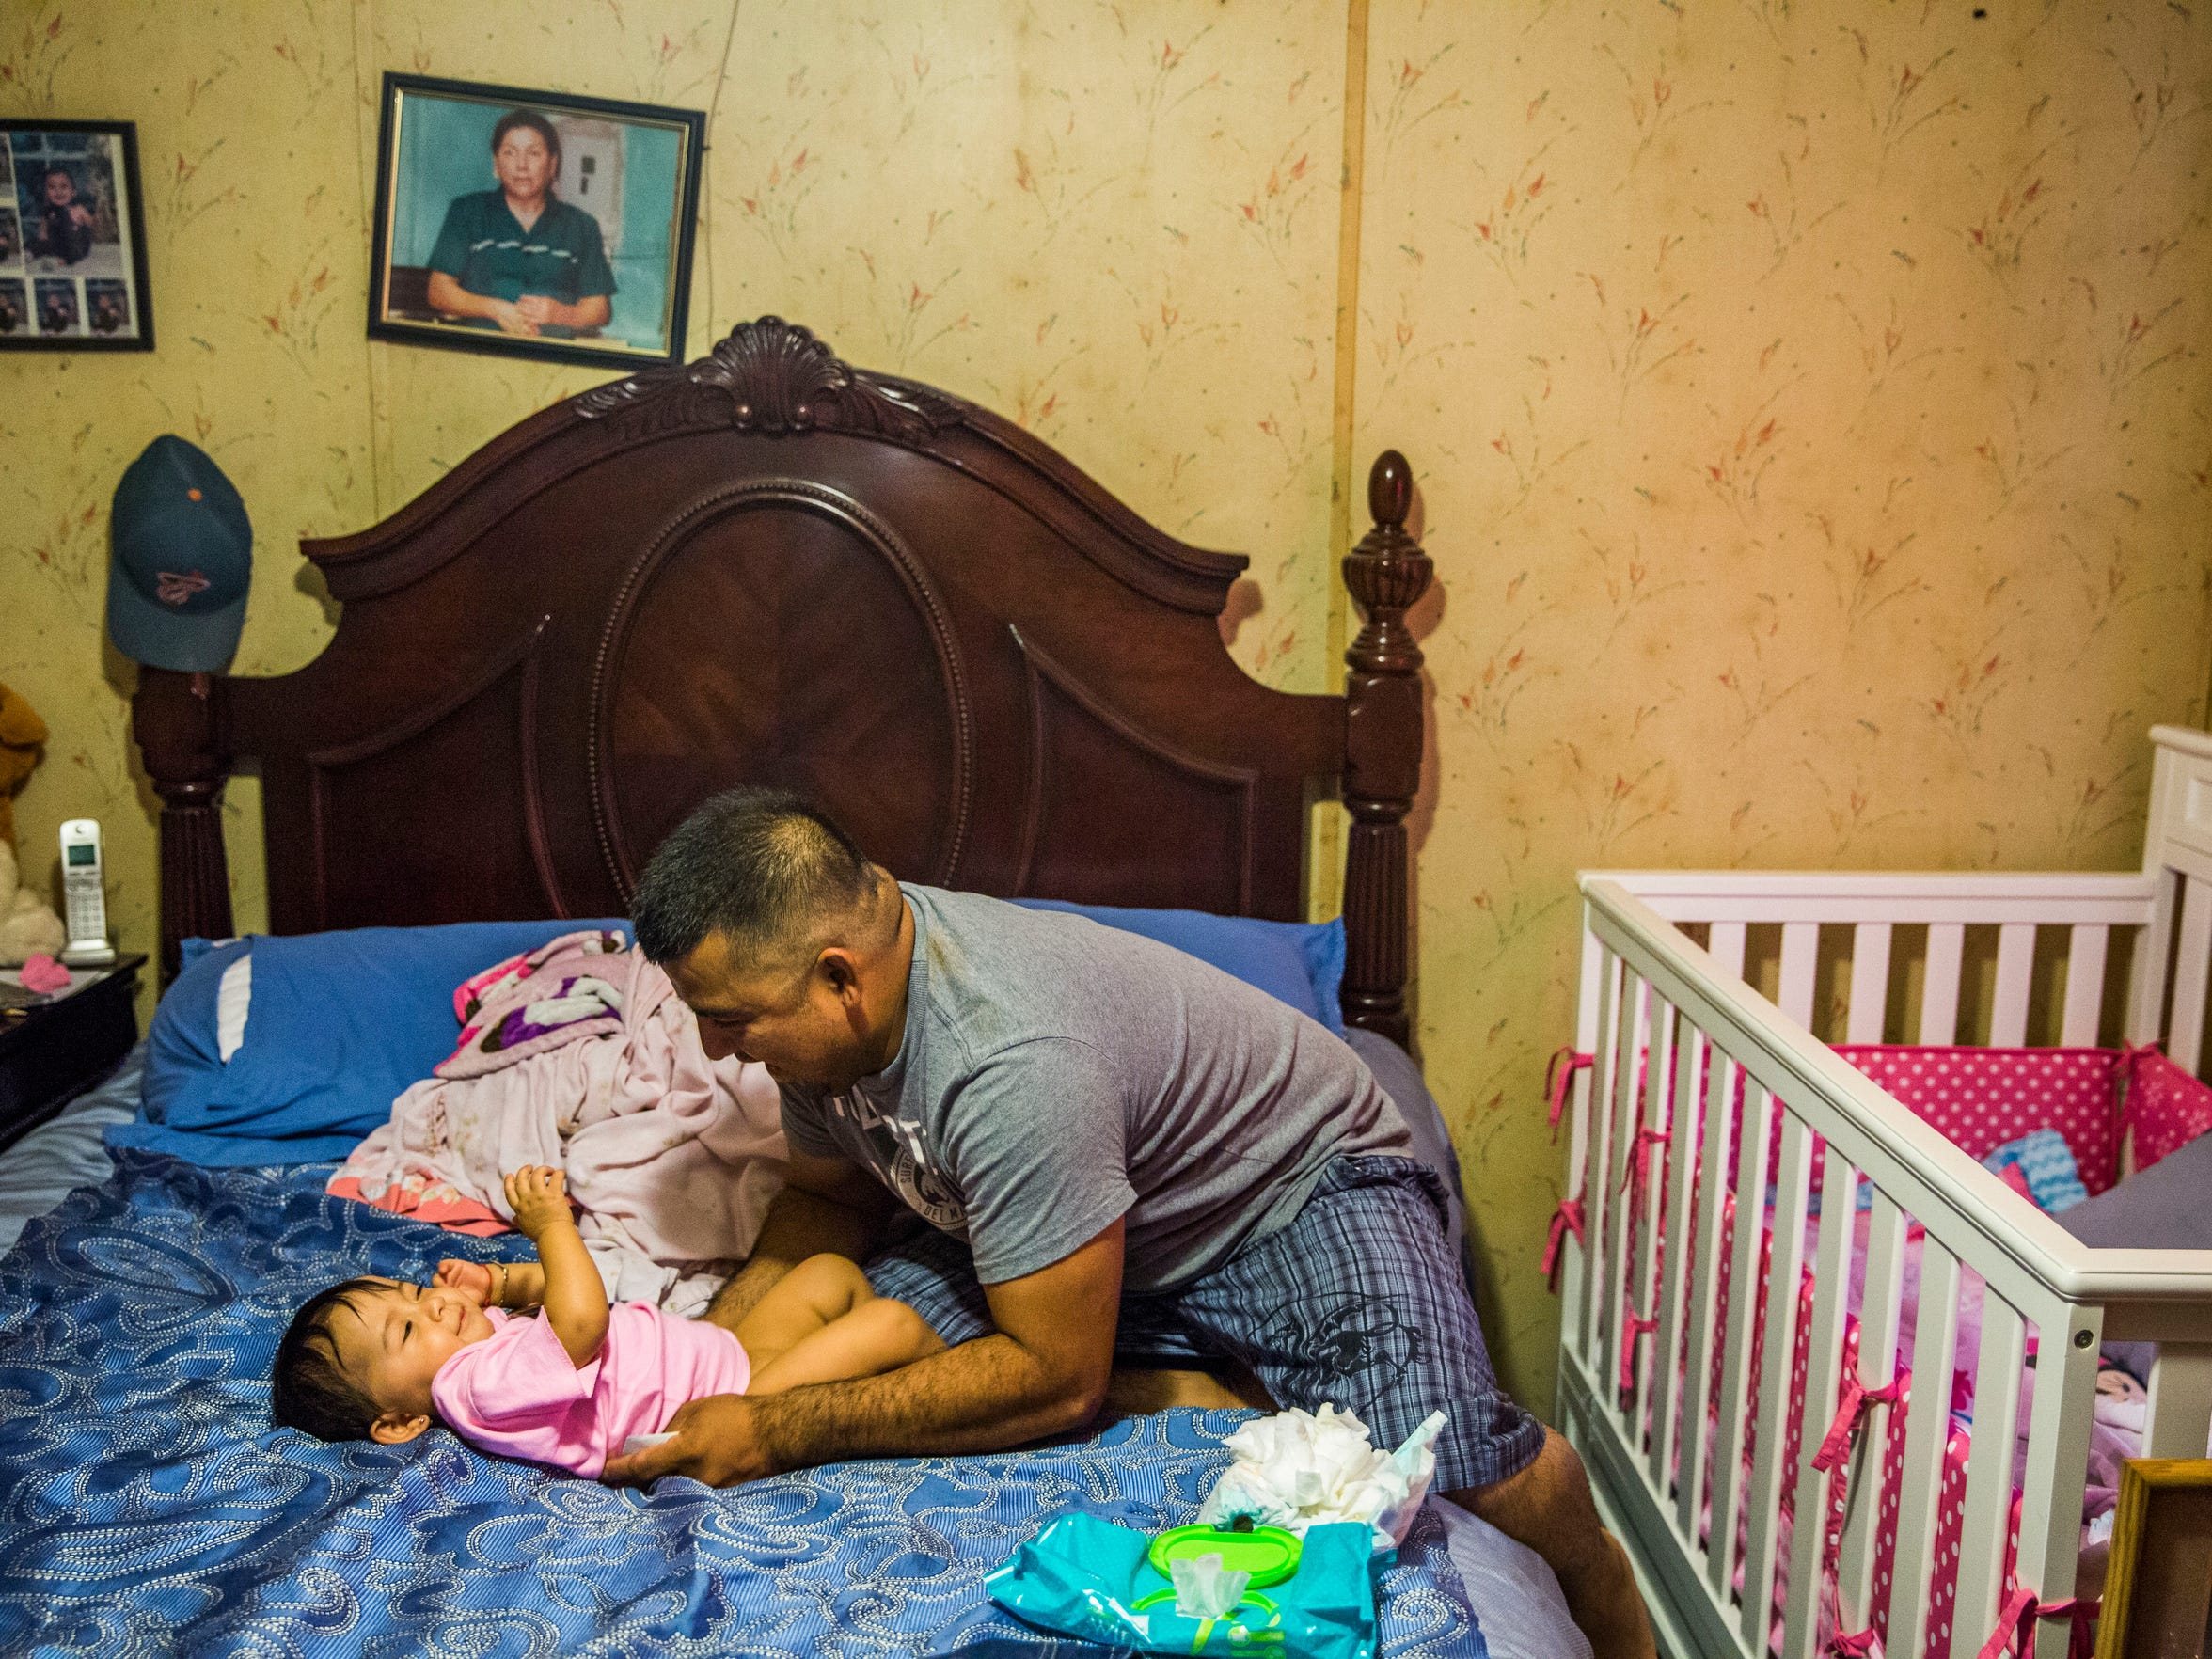 Abednego de la Cruz plays with his daughter Jazlyn, 10 months old, after changing her diaper in their Chattahoochee, Fla., home on Saturday, July 1, 2017. De la Cruz fears he may not be able to raise her. He was one of 163 Florida immigrant workers who were injured, then charged with using a false Social Security number to obtain a job or benefits. Now he faces deportation.